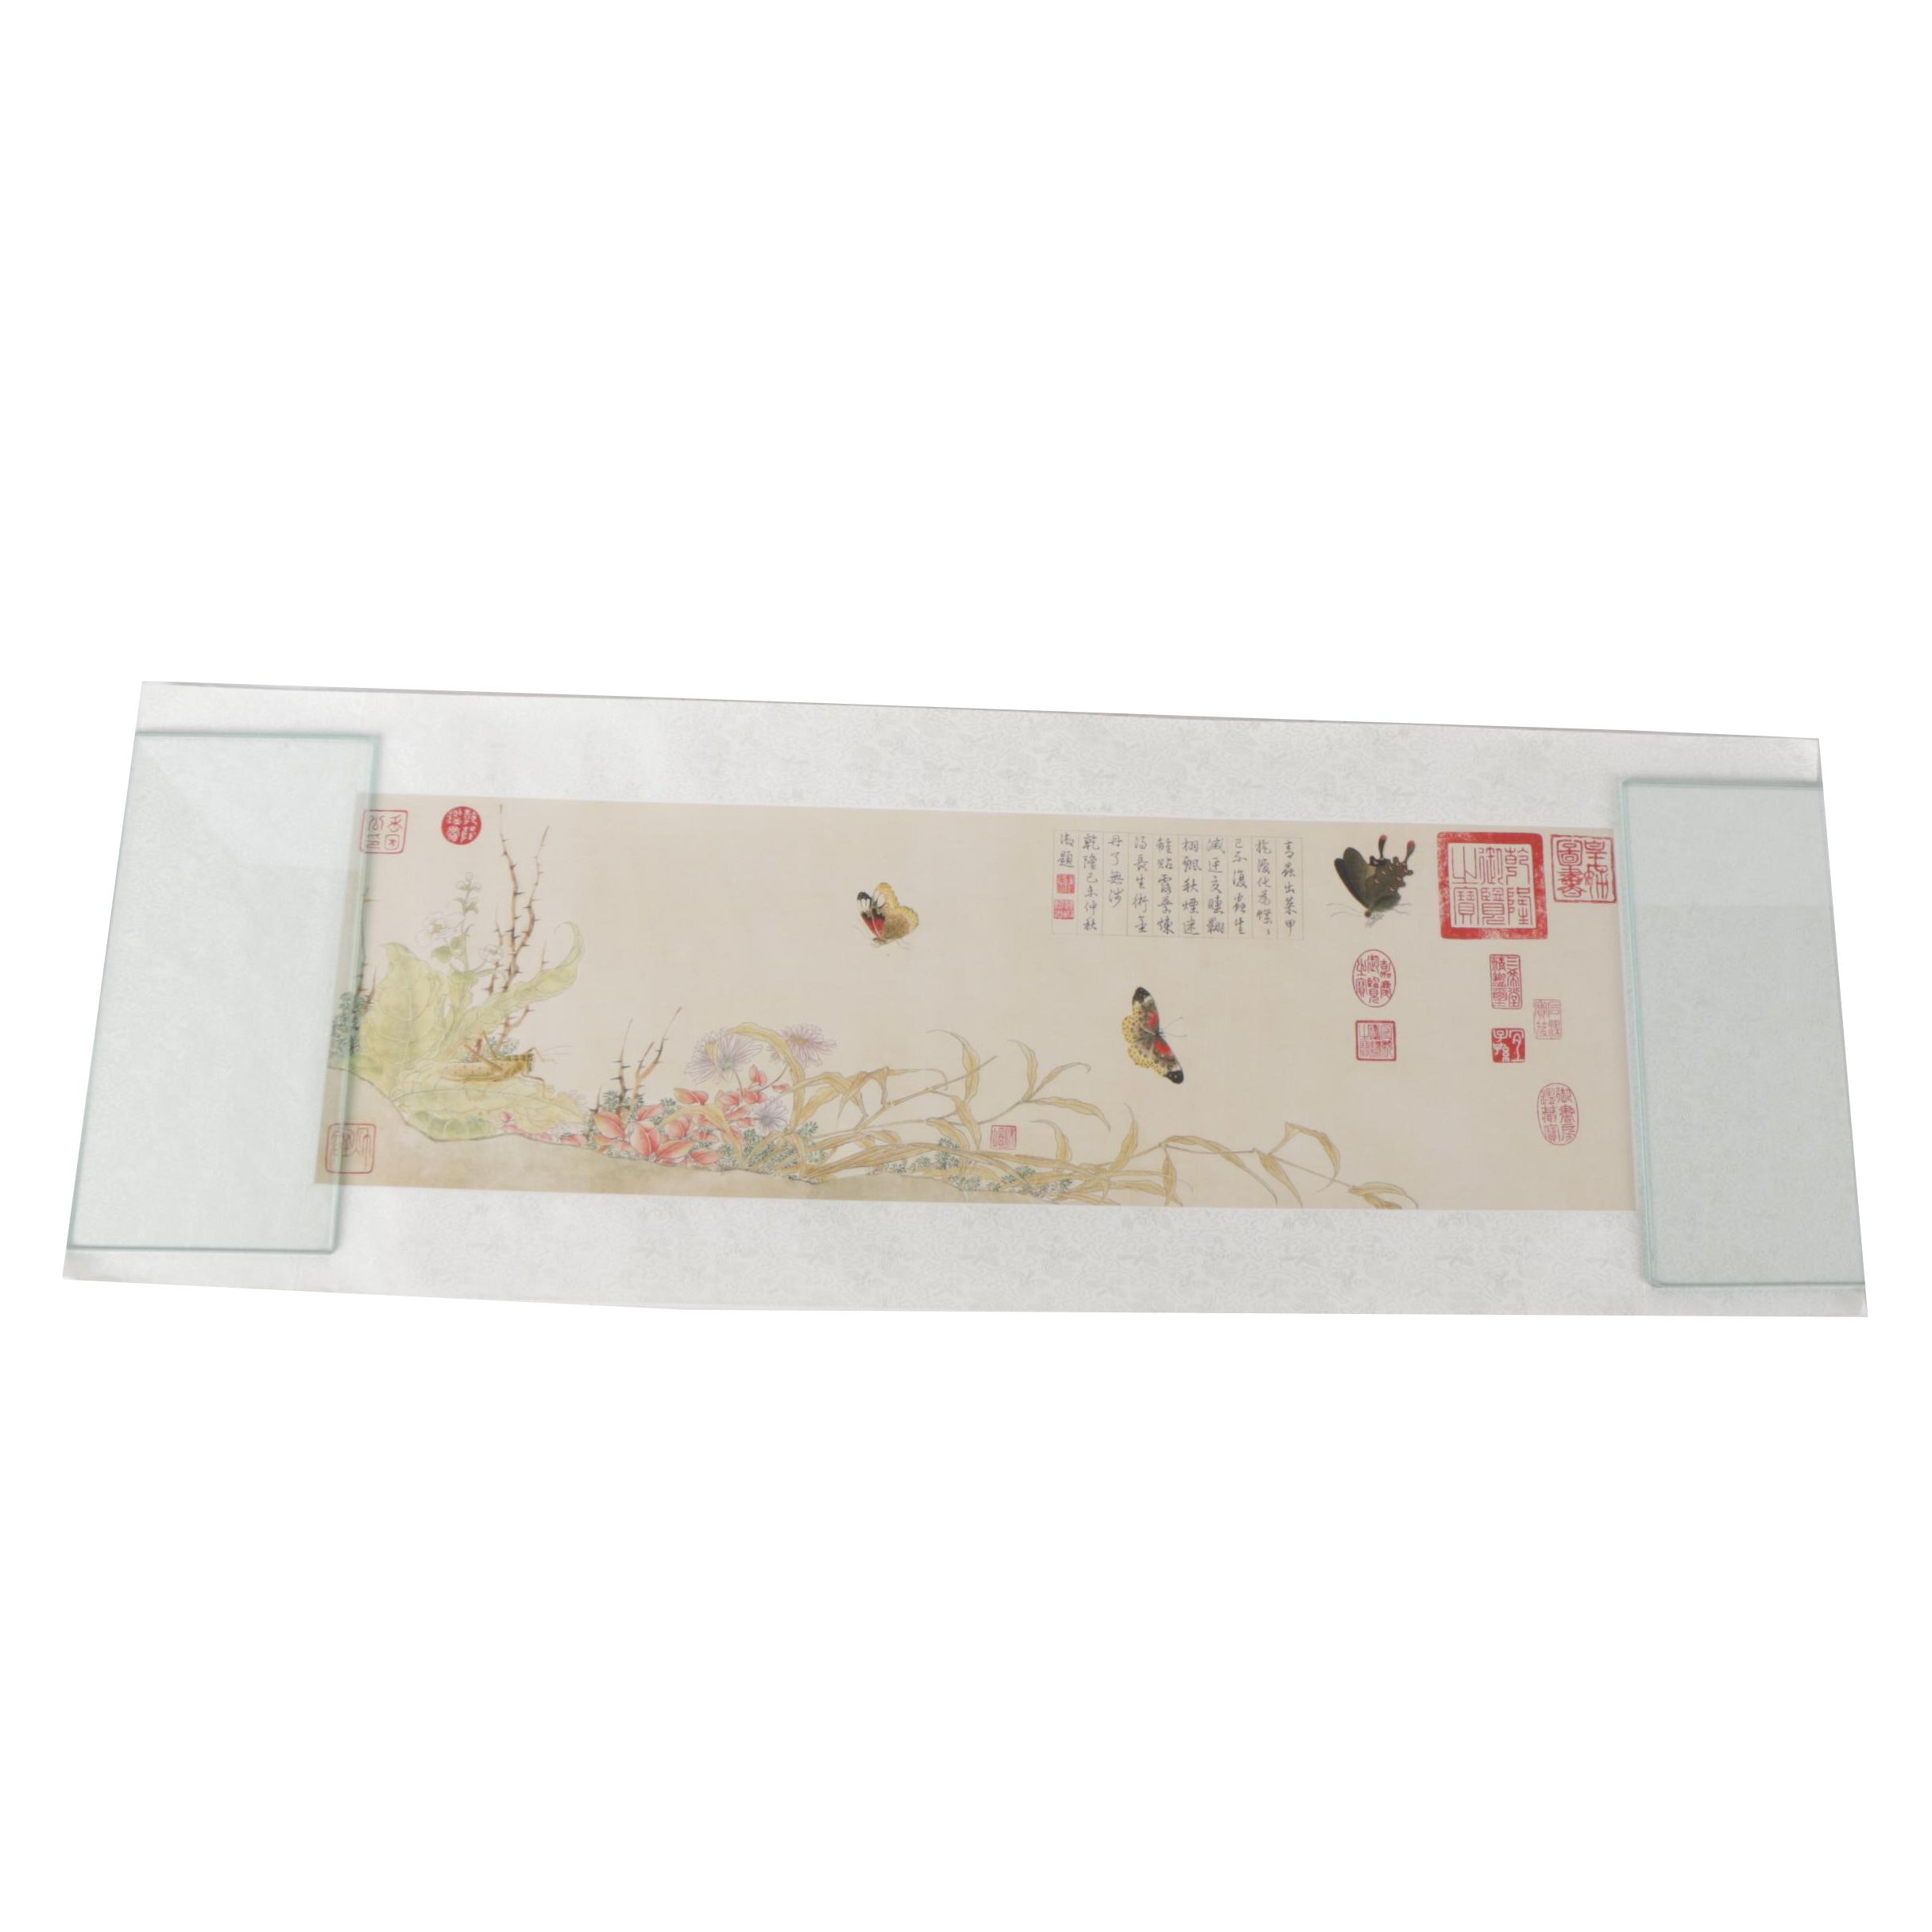 Giclee Print After Chinese Watercolor Painting Handscroll